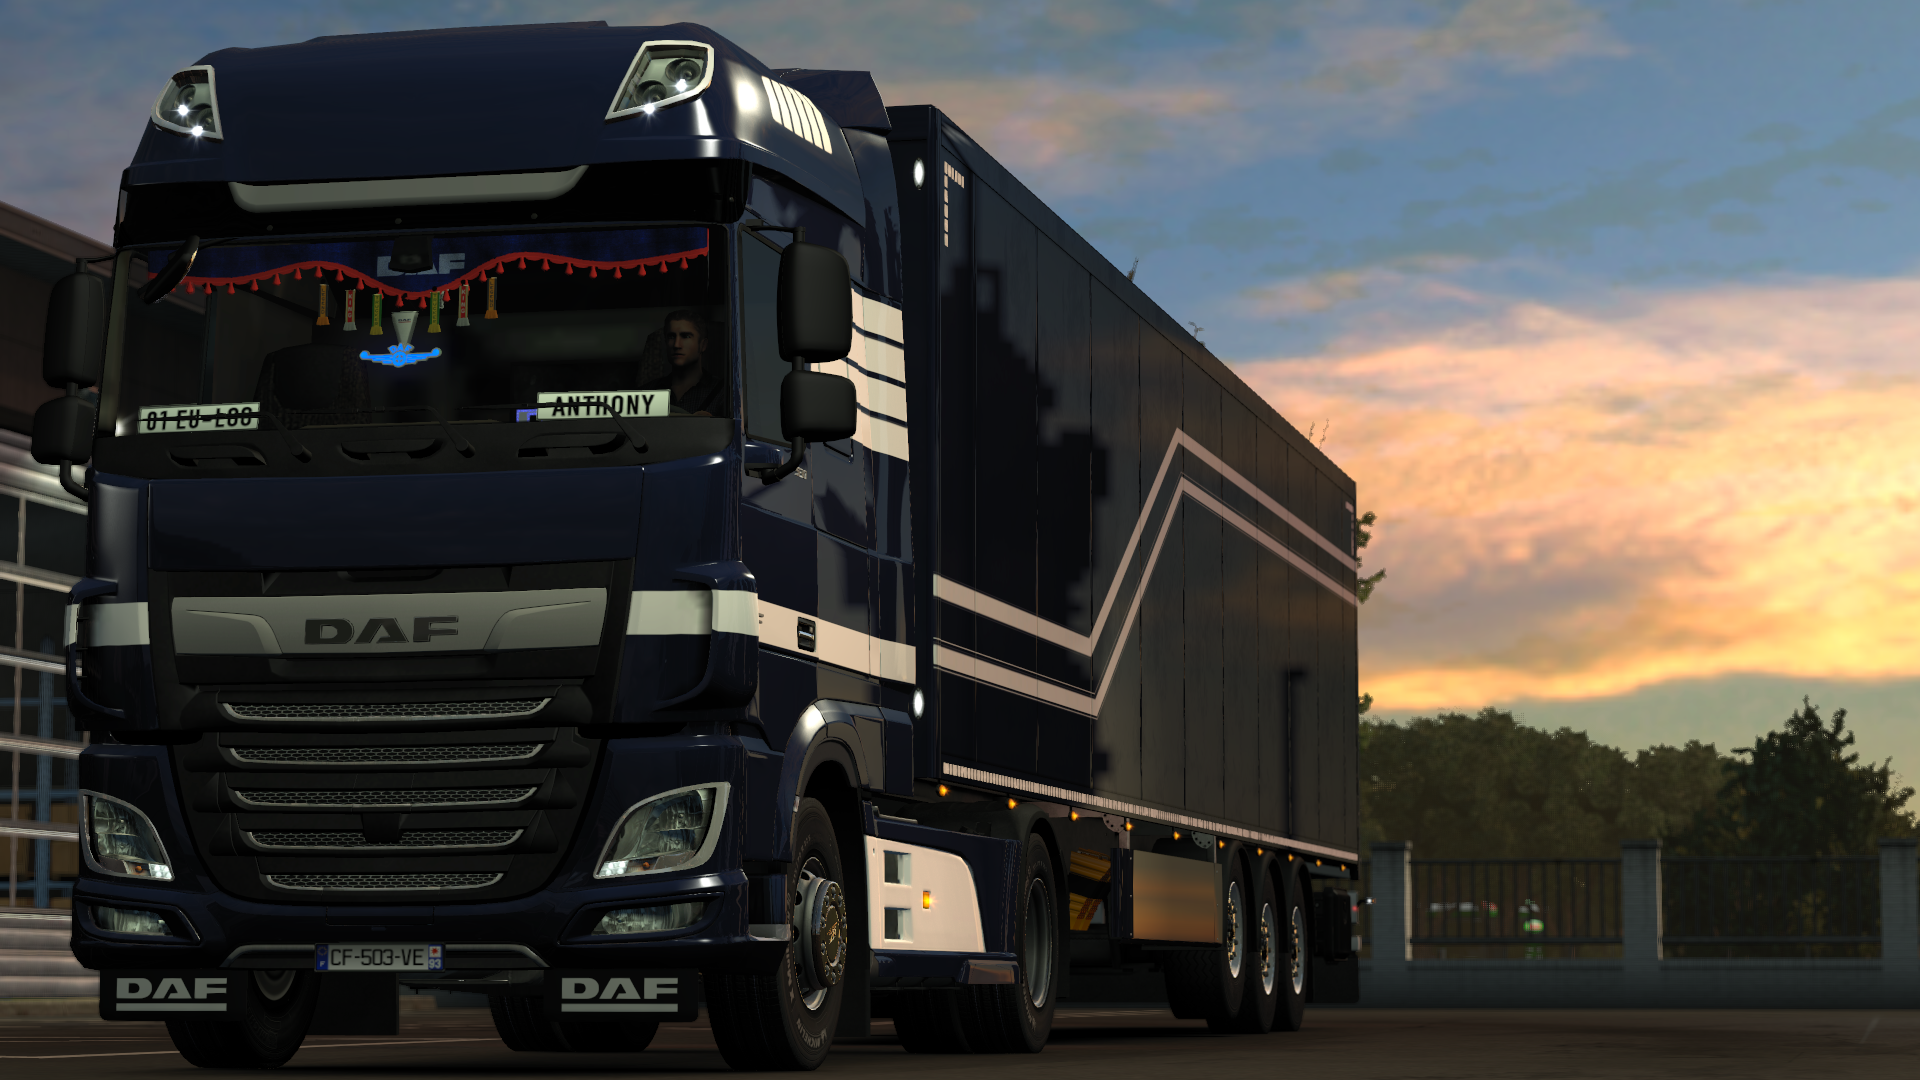 ets2_20180812_003703_00.png